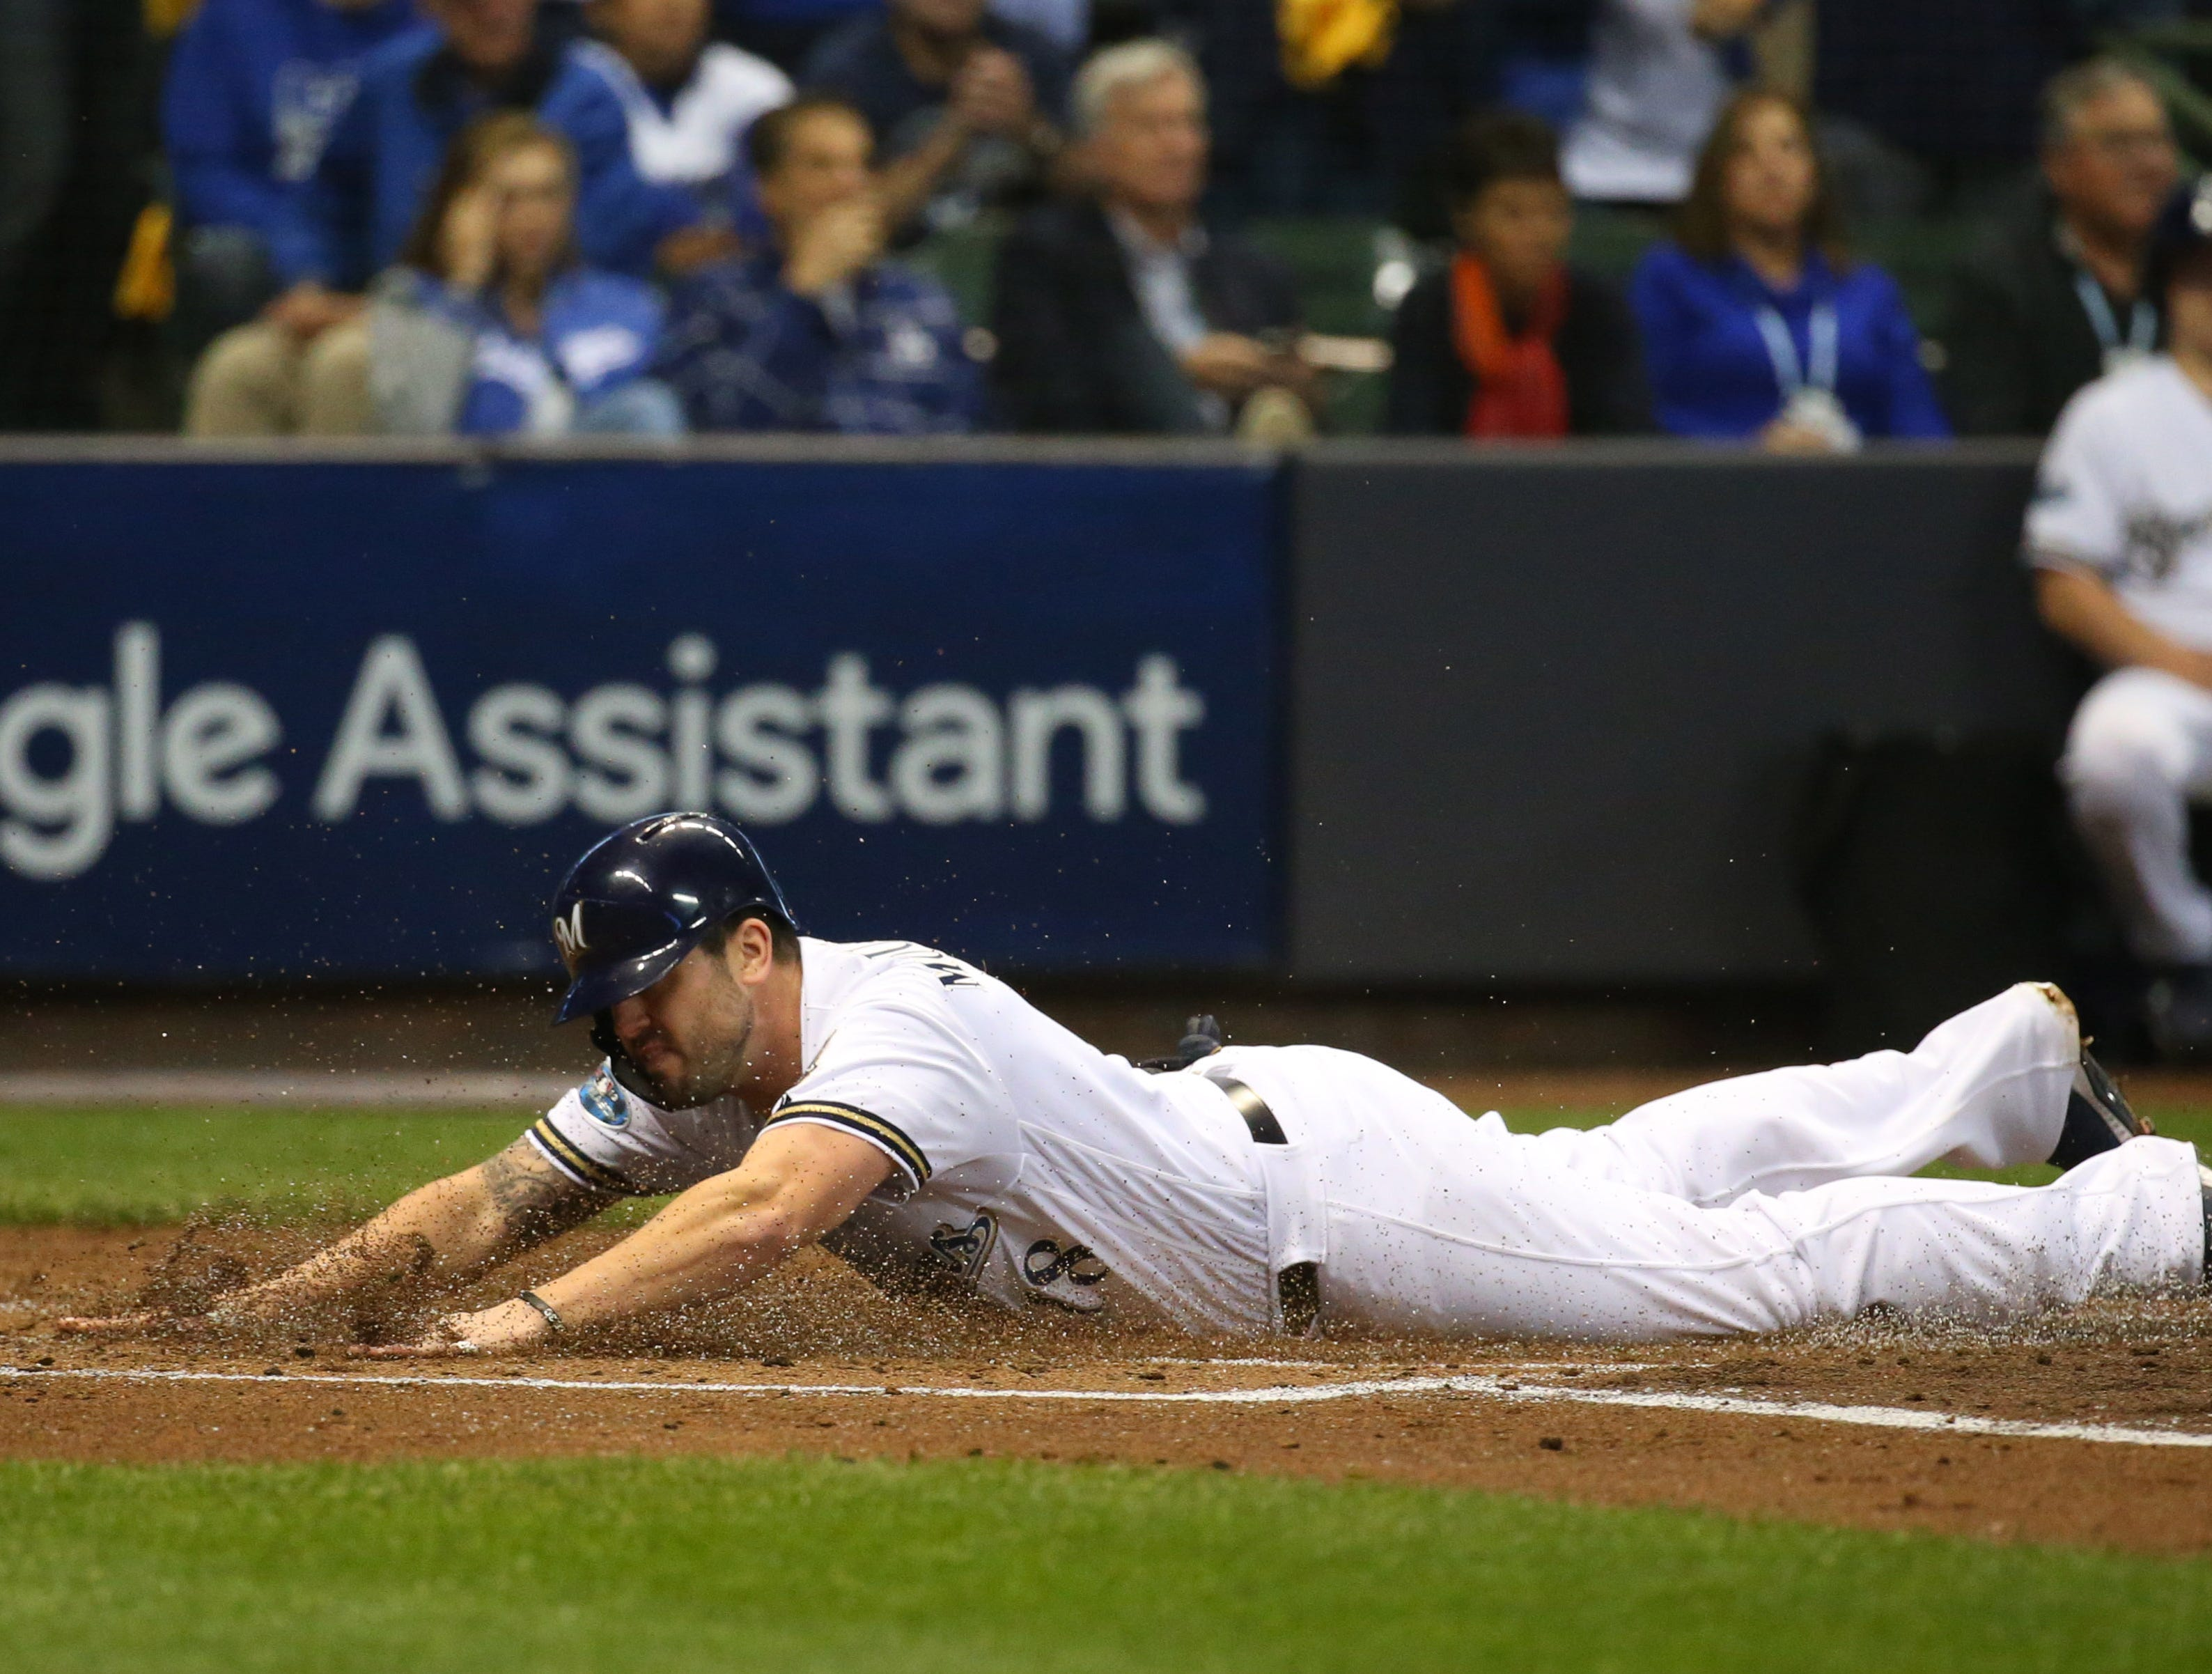 NLCS Game 6: Mike Moustakas scores a run in the first inning.